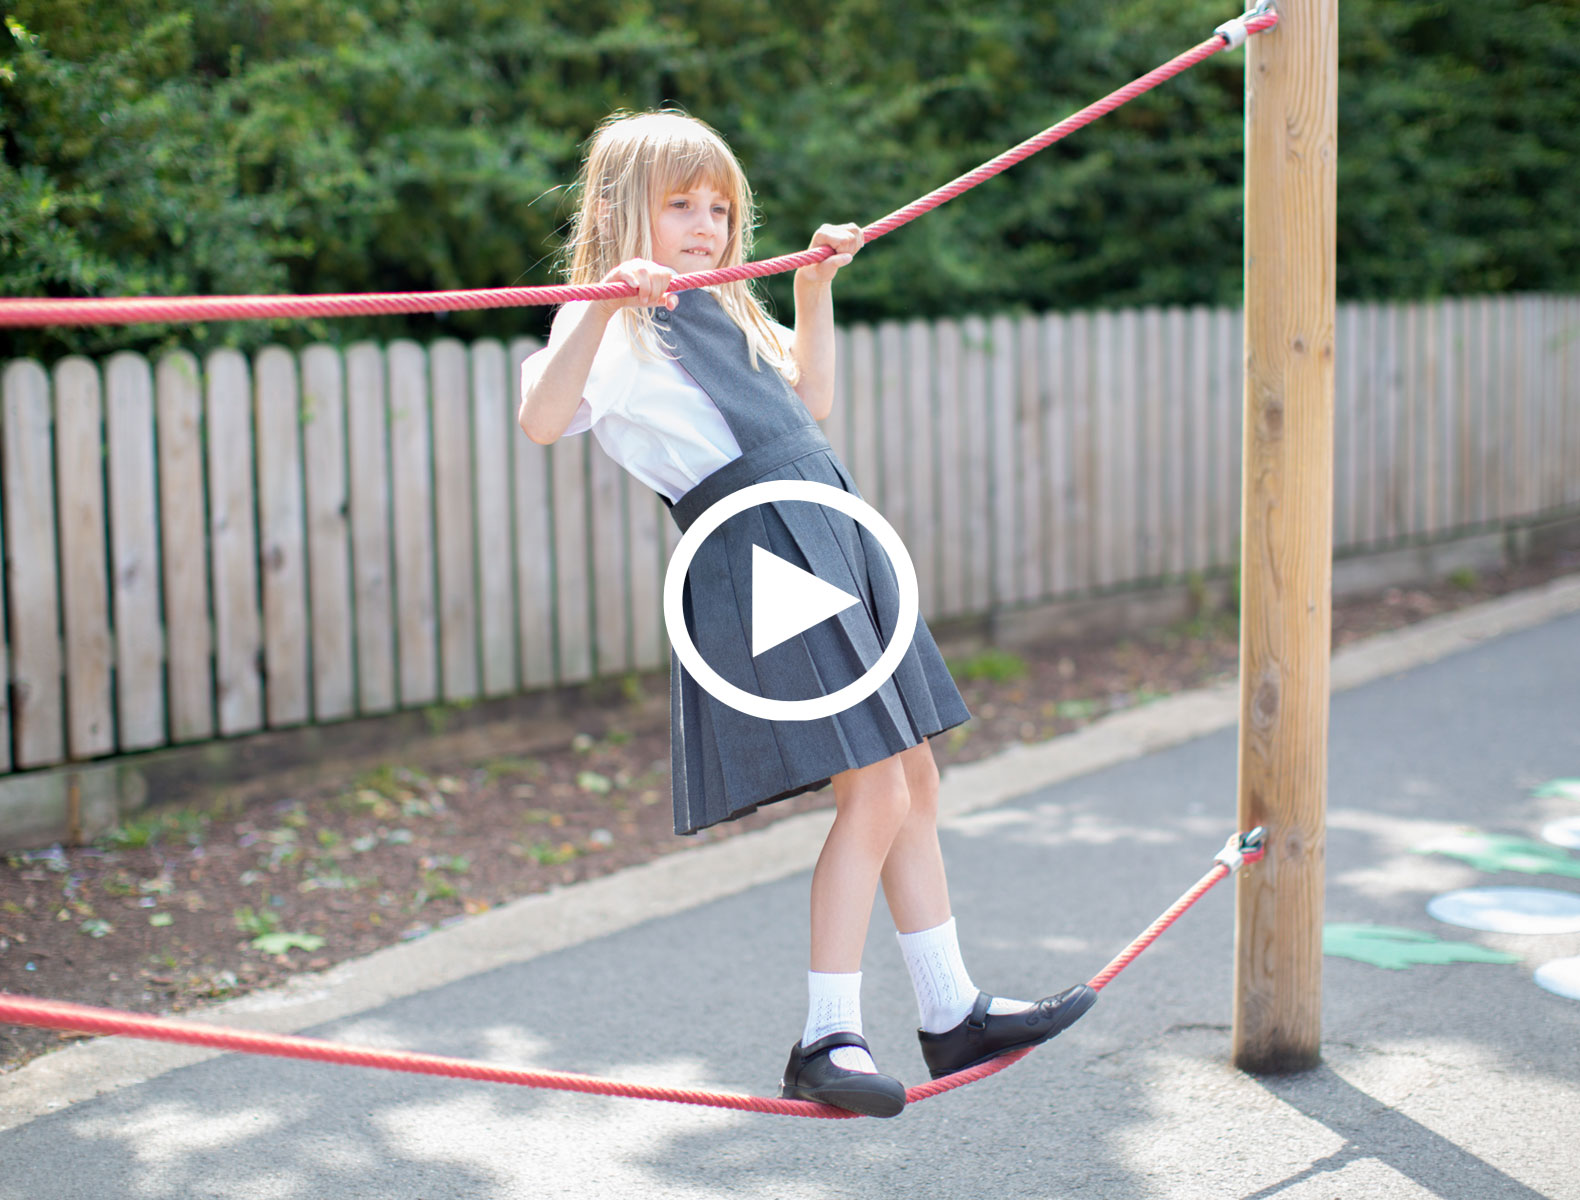 School Shoes - The Rite Way. Watch our Video